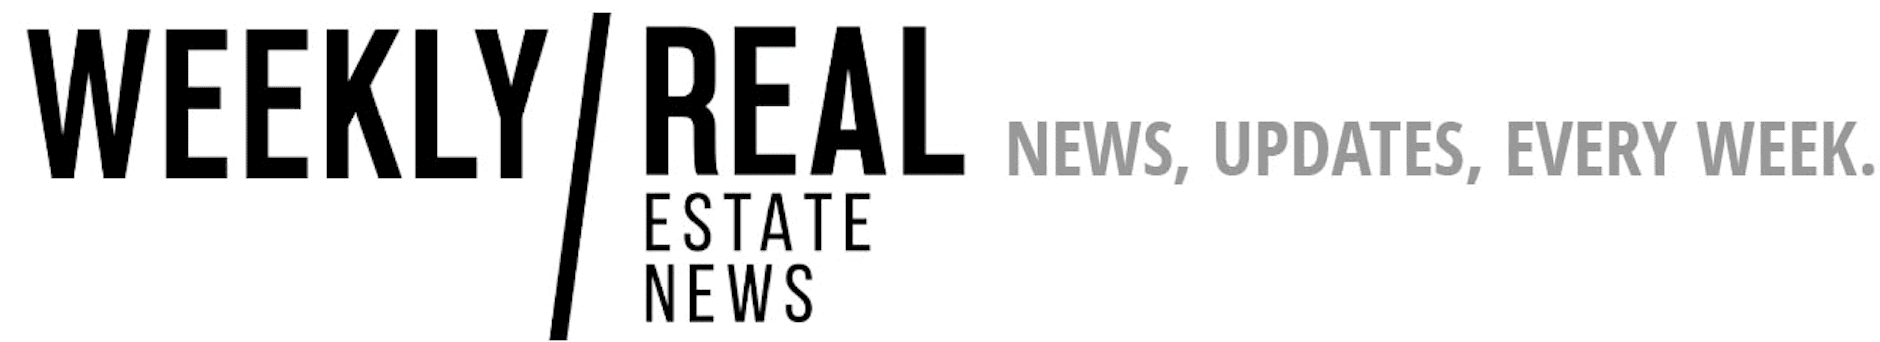 Weekly Real Estate News Online Logo With Tagline